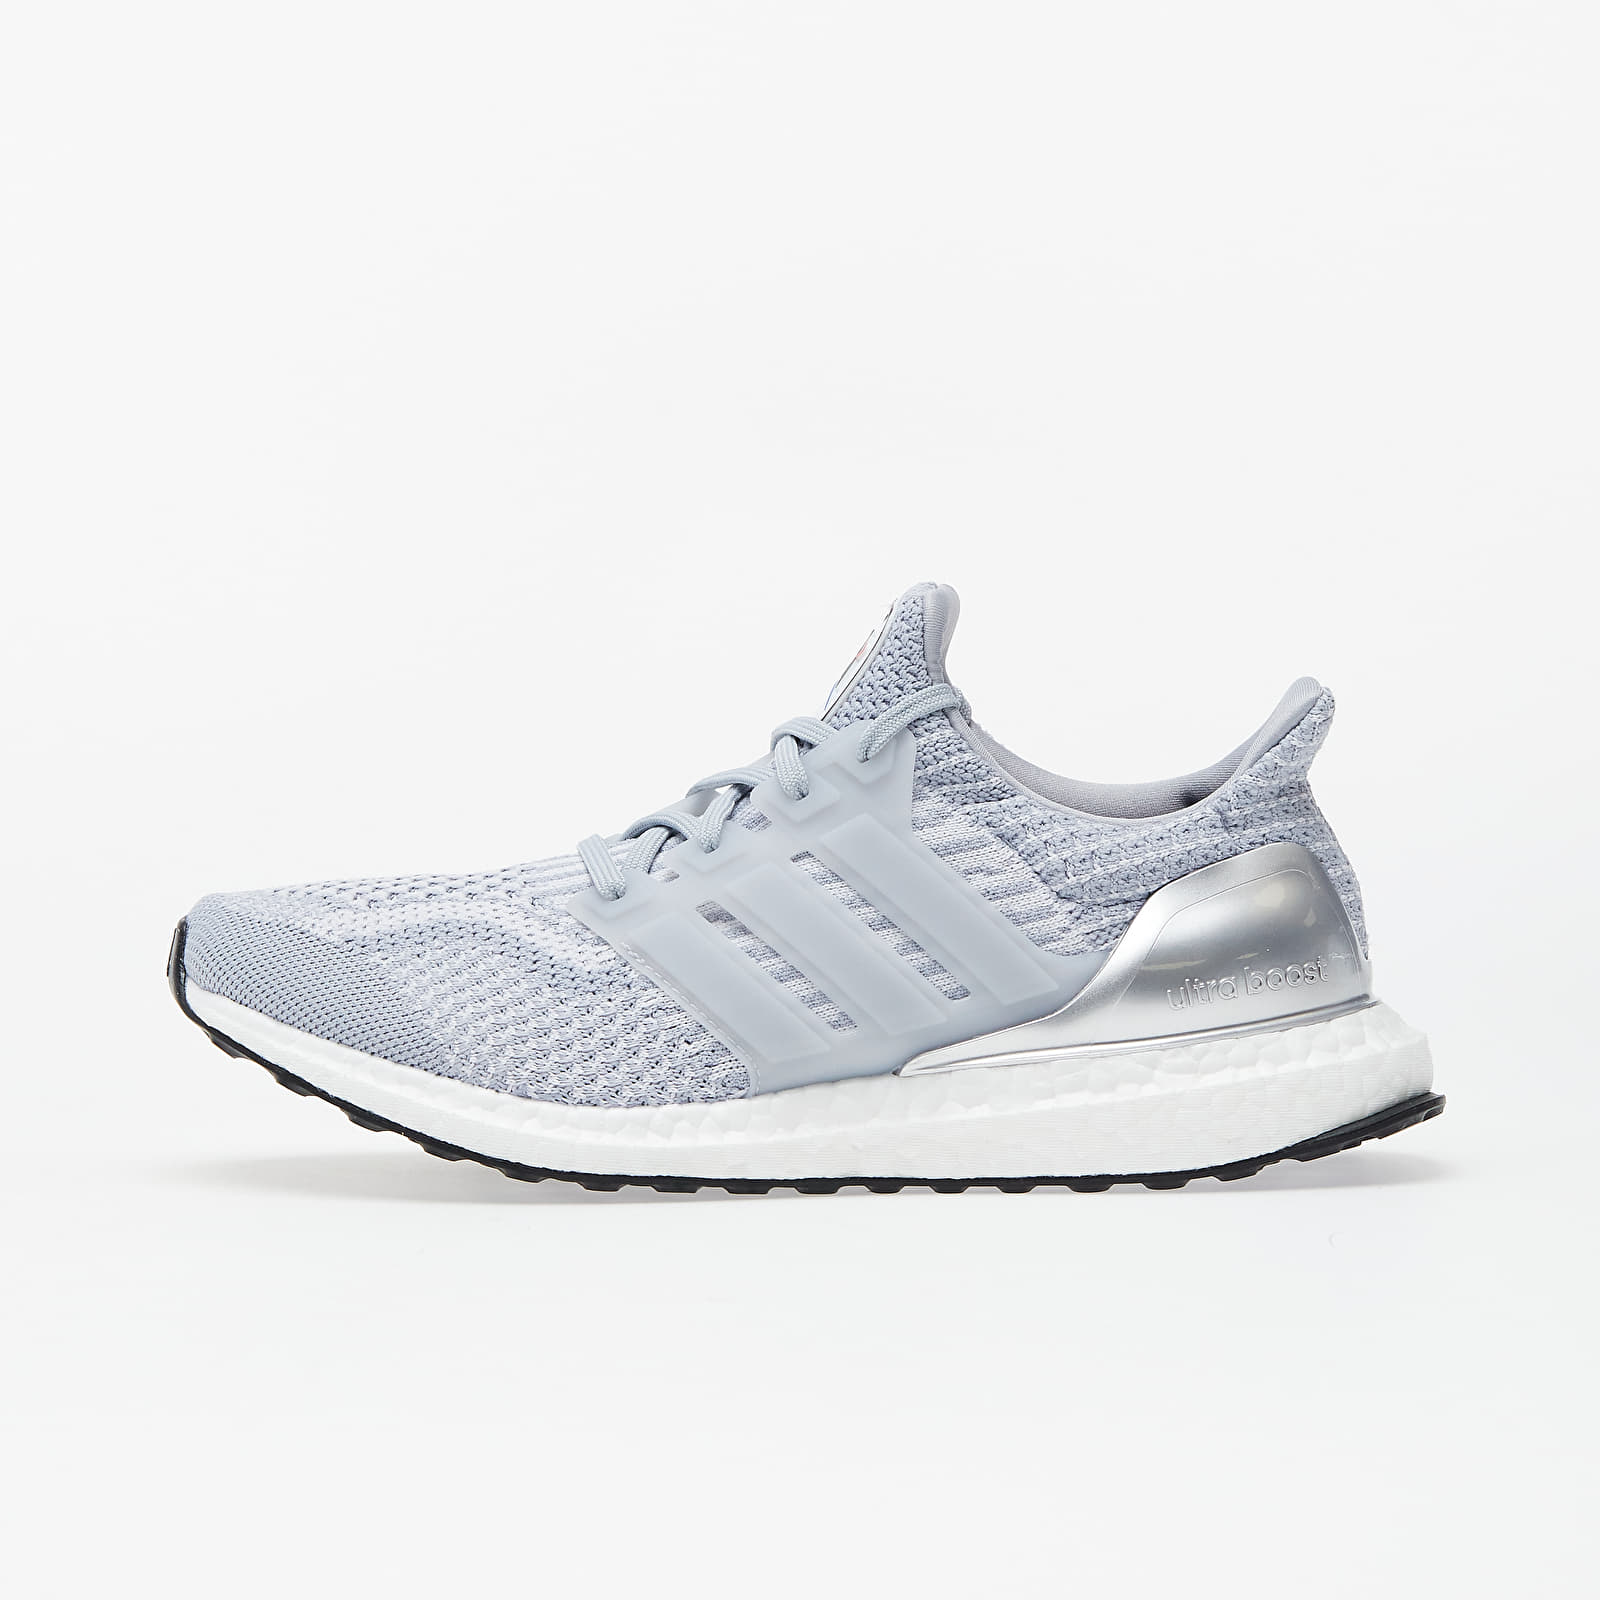 Men's shoes adidas UltraBOOST 5.0 DNA Halo Silver/ Halo Silver/ Dash Grey